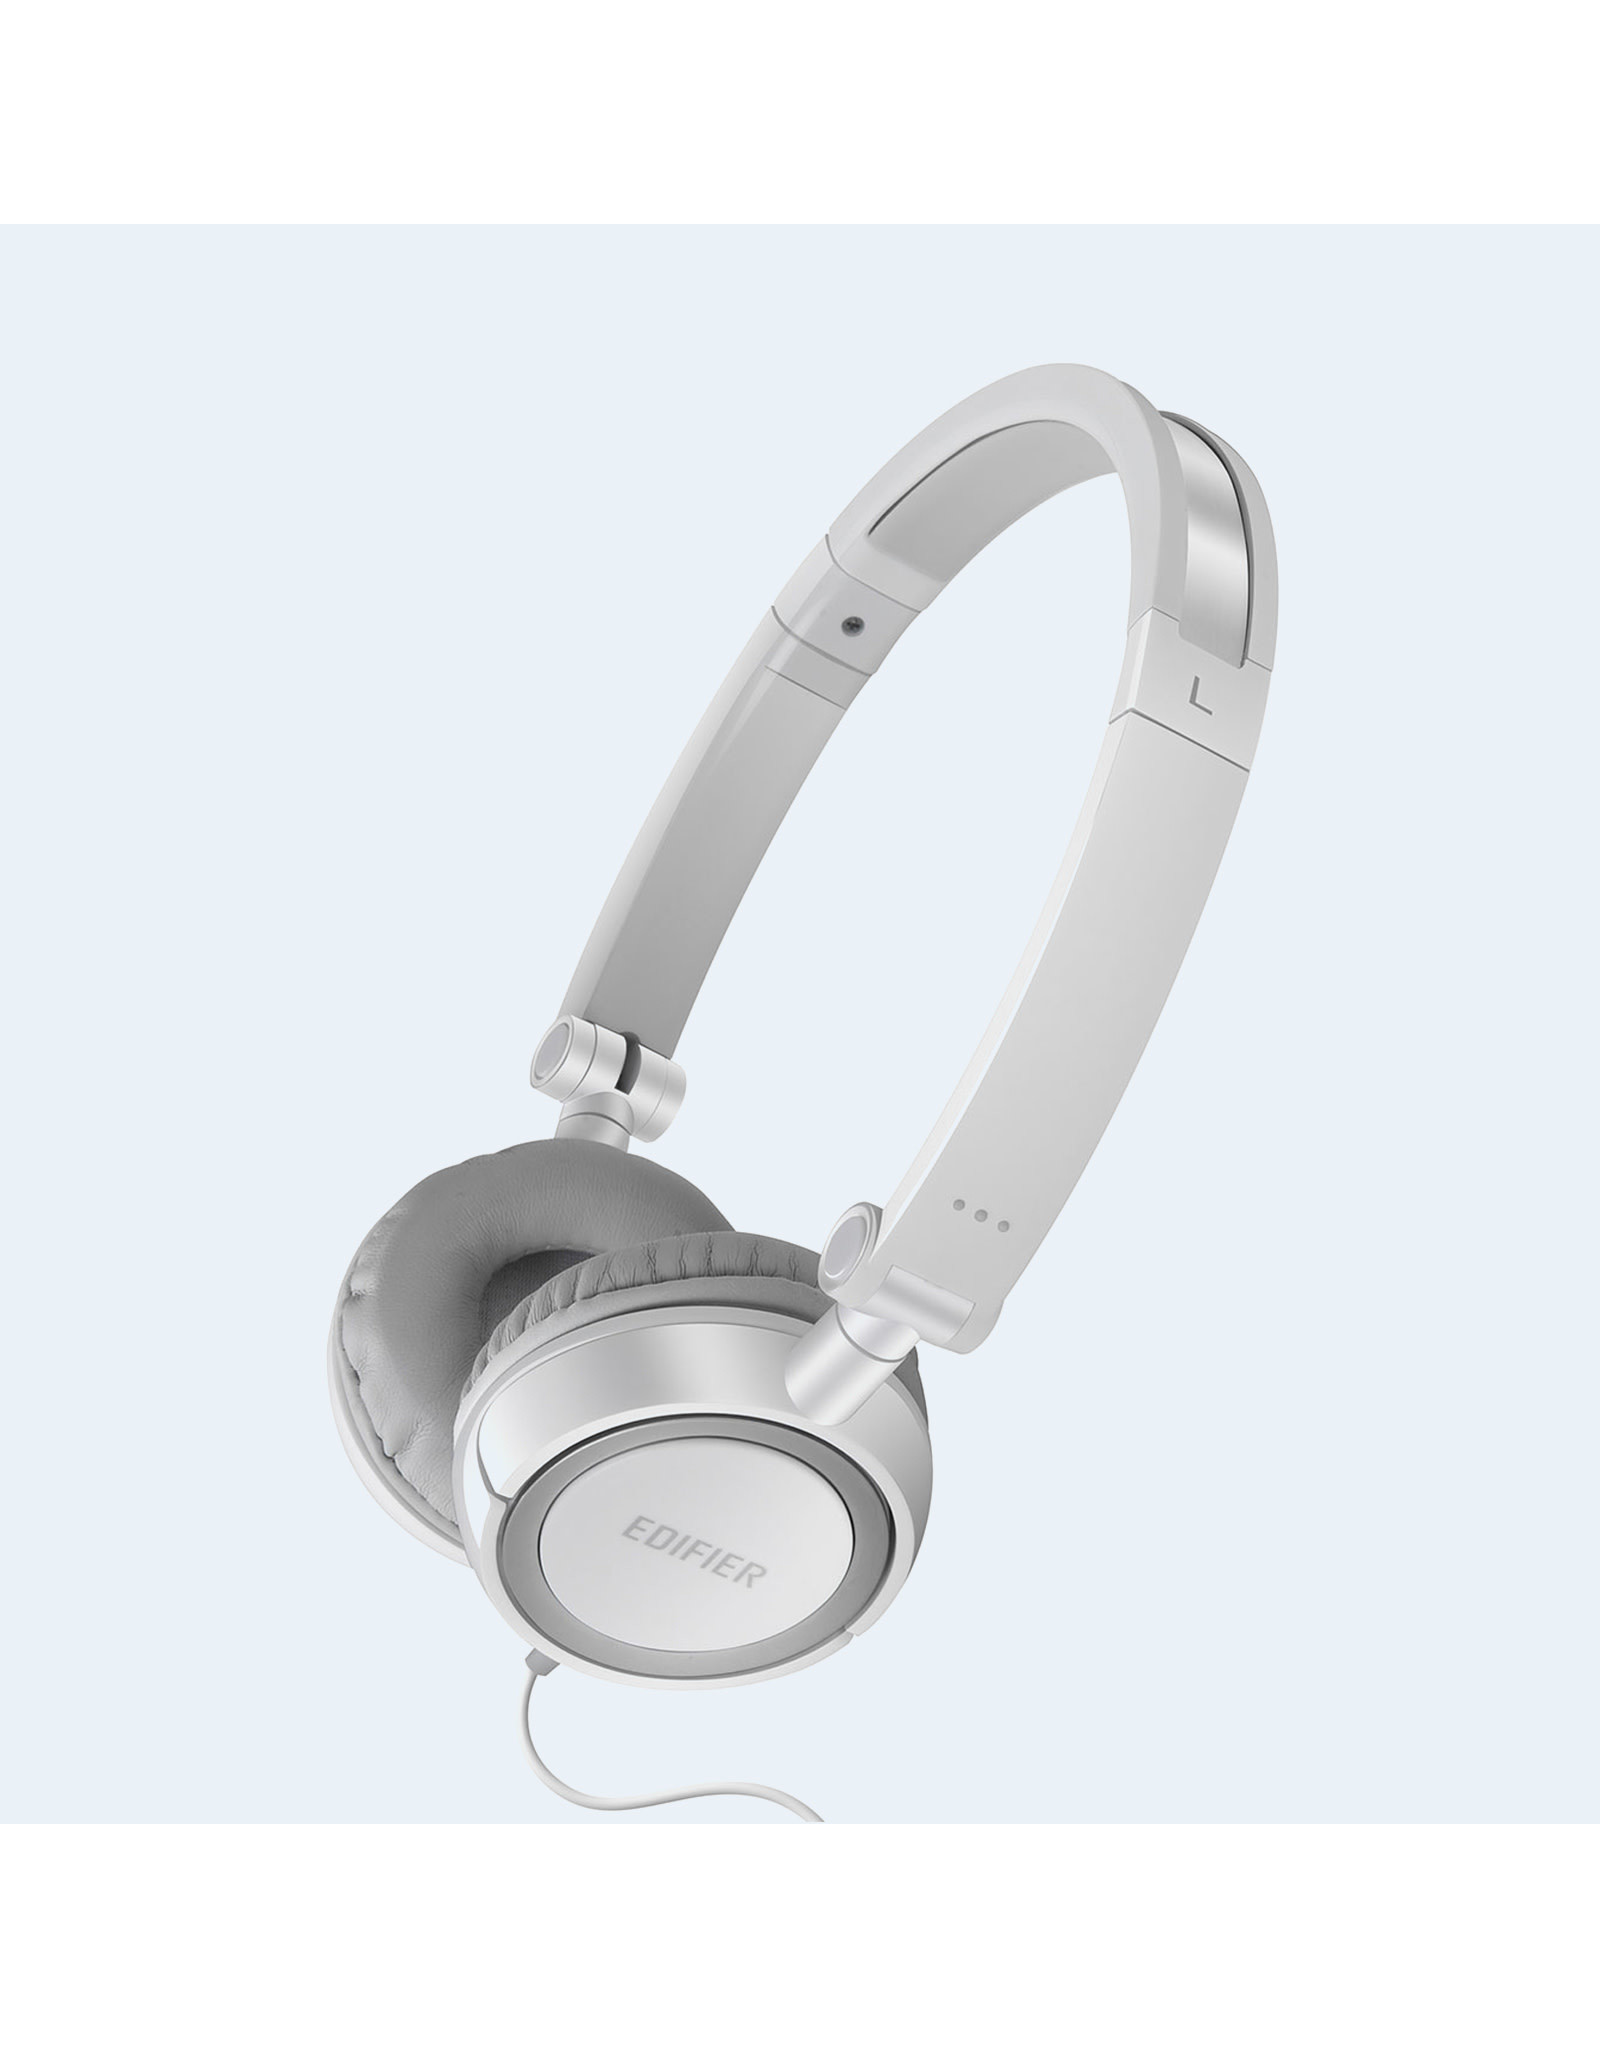 Edifier Edifier H650 Wired Headphones White